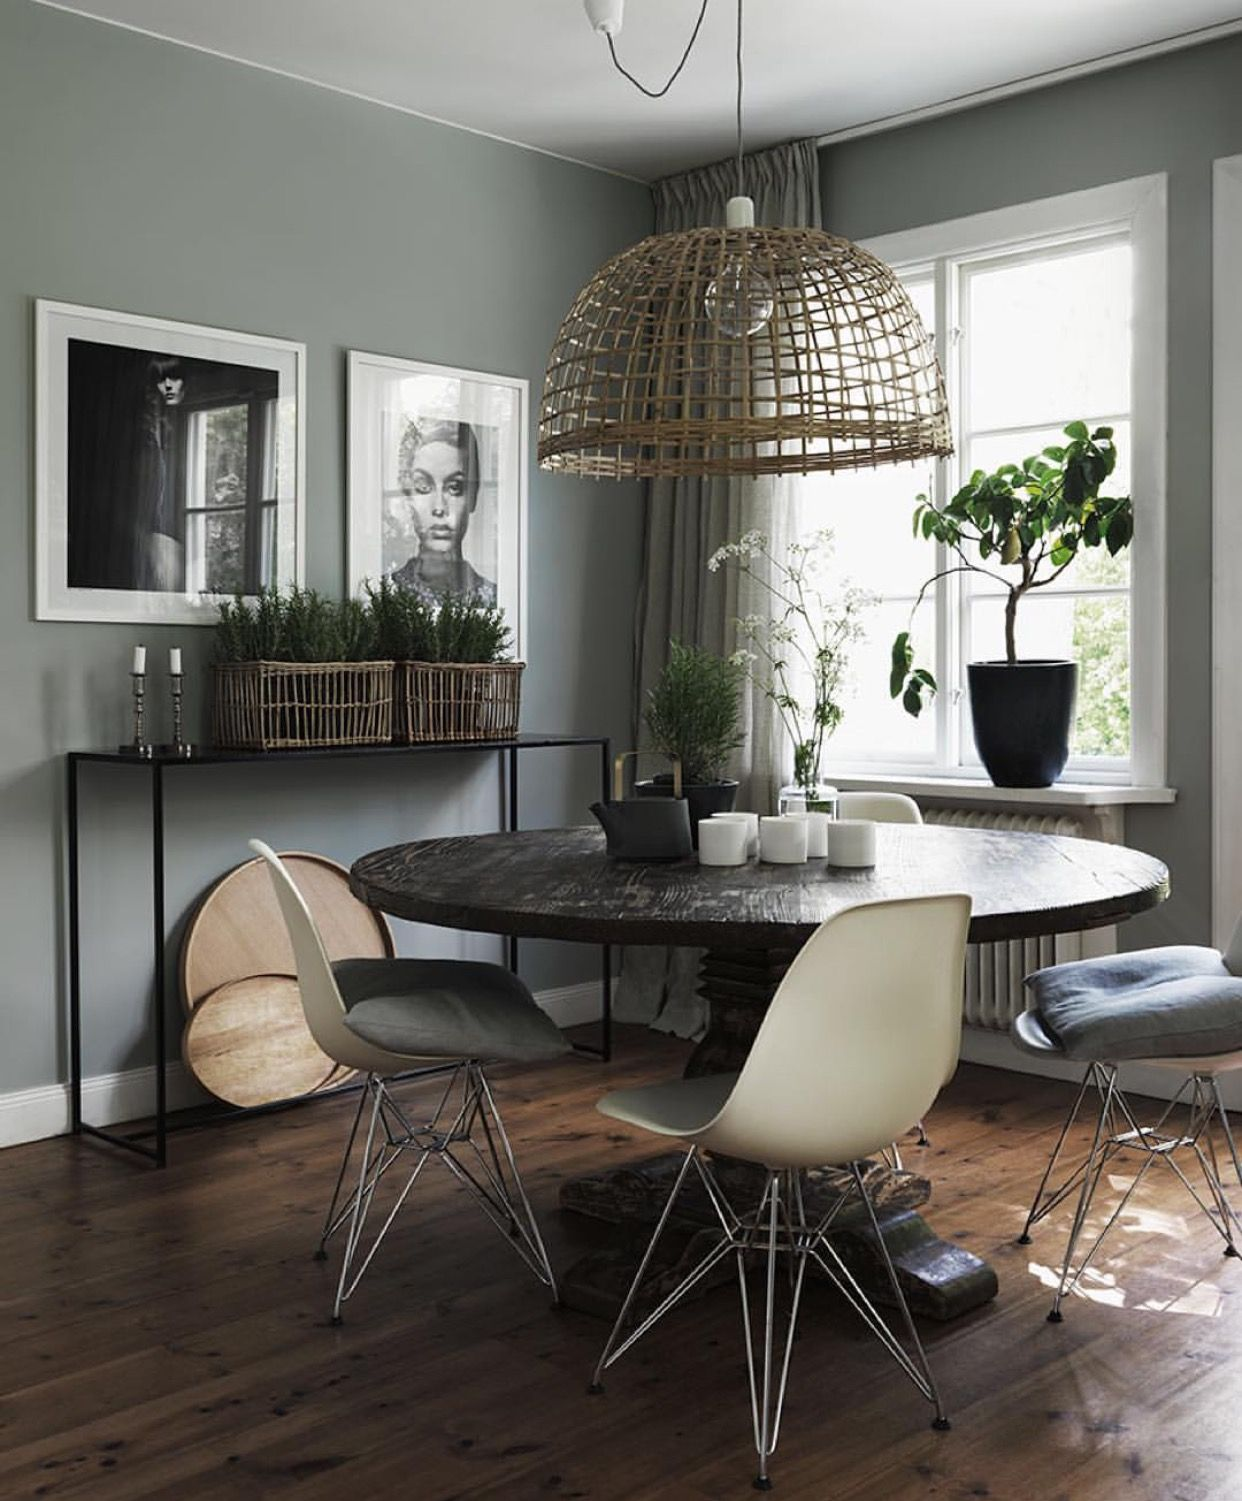 Sage Green Dining Room: Very Attainable Yet Stylish Little Dining Area. I Love All